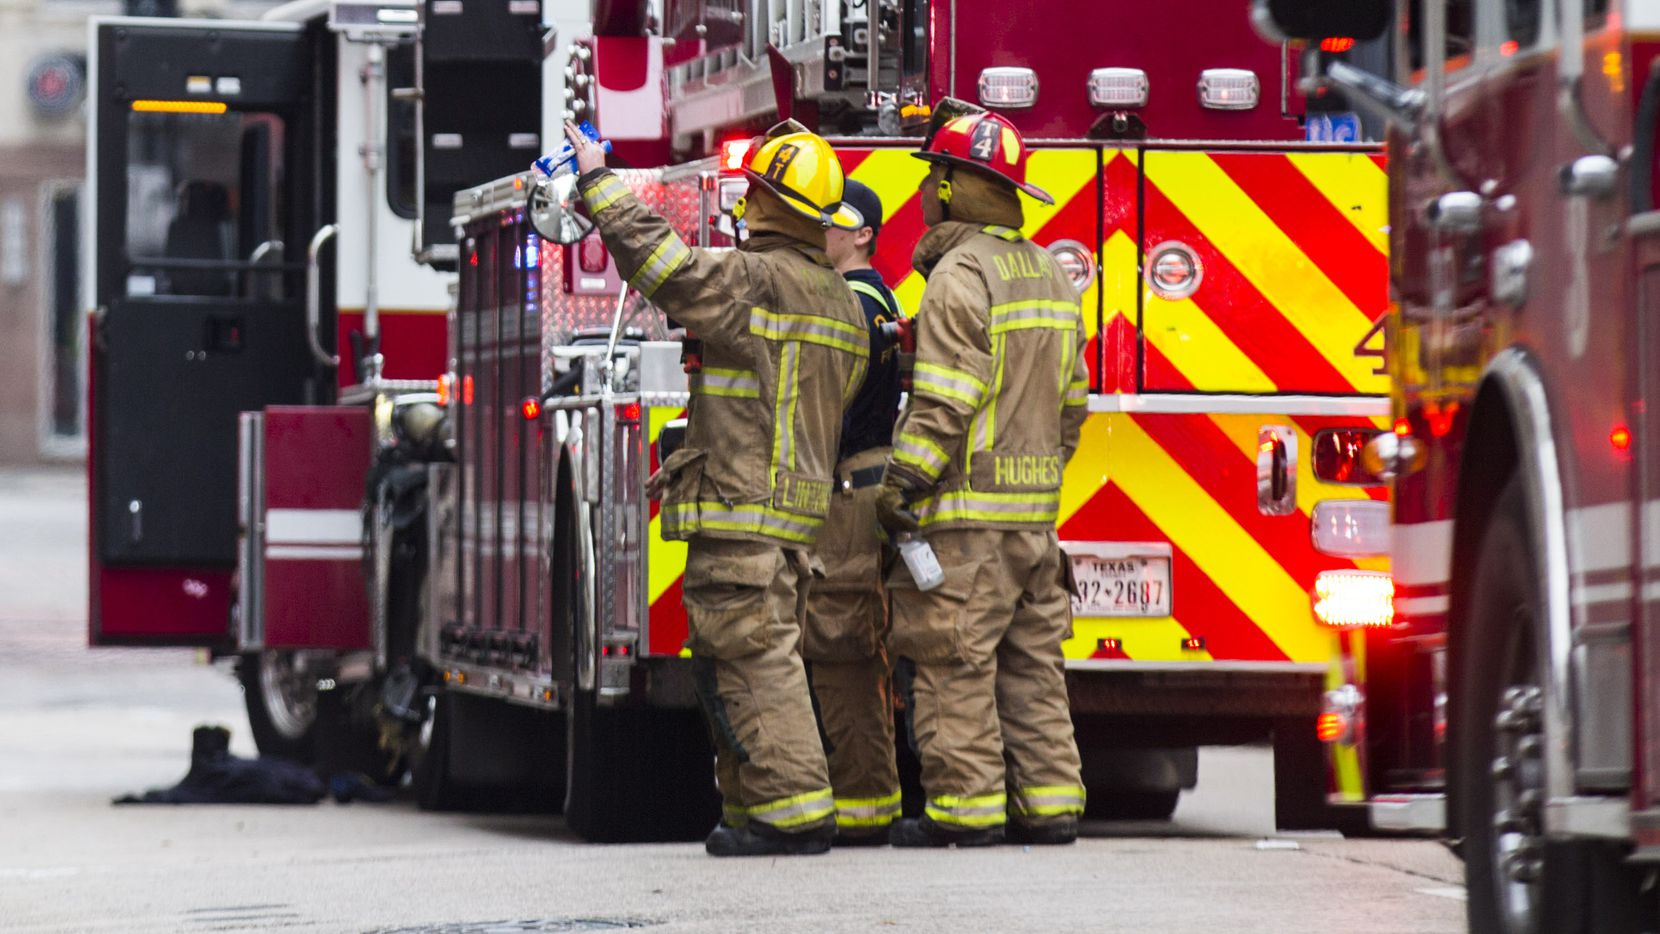 Fire fighters stand outside of Zenna Thai & Japanese Restaurant after fighting a fire that started in the kitchen on Thursday, February 28, 2019 in downtown Dallas.